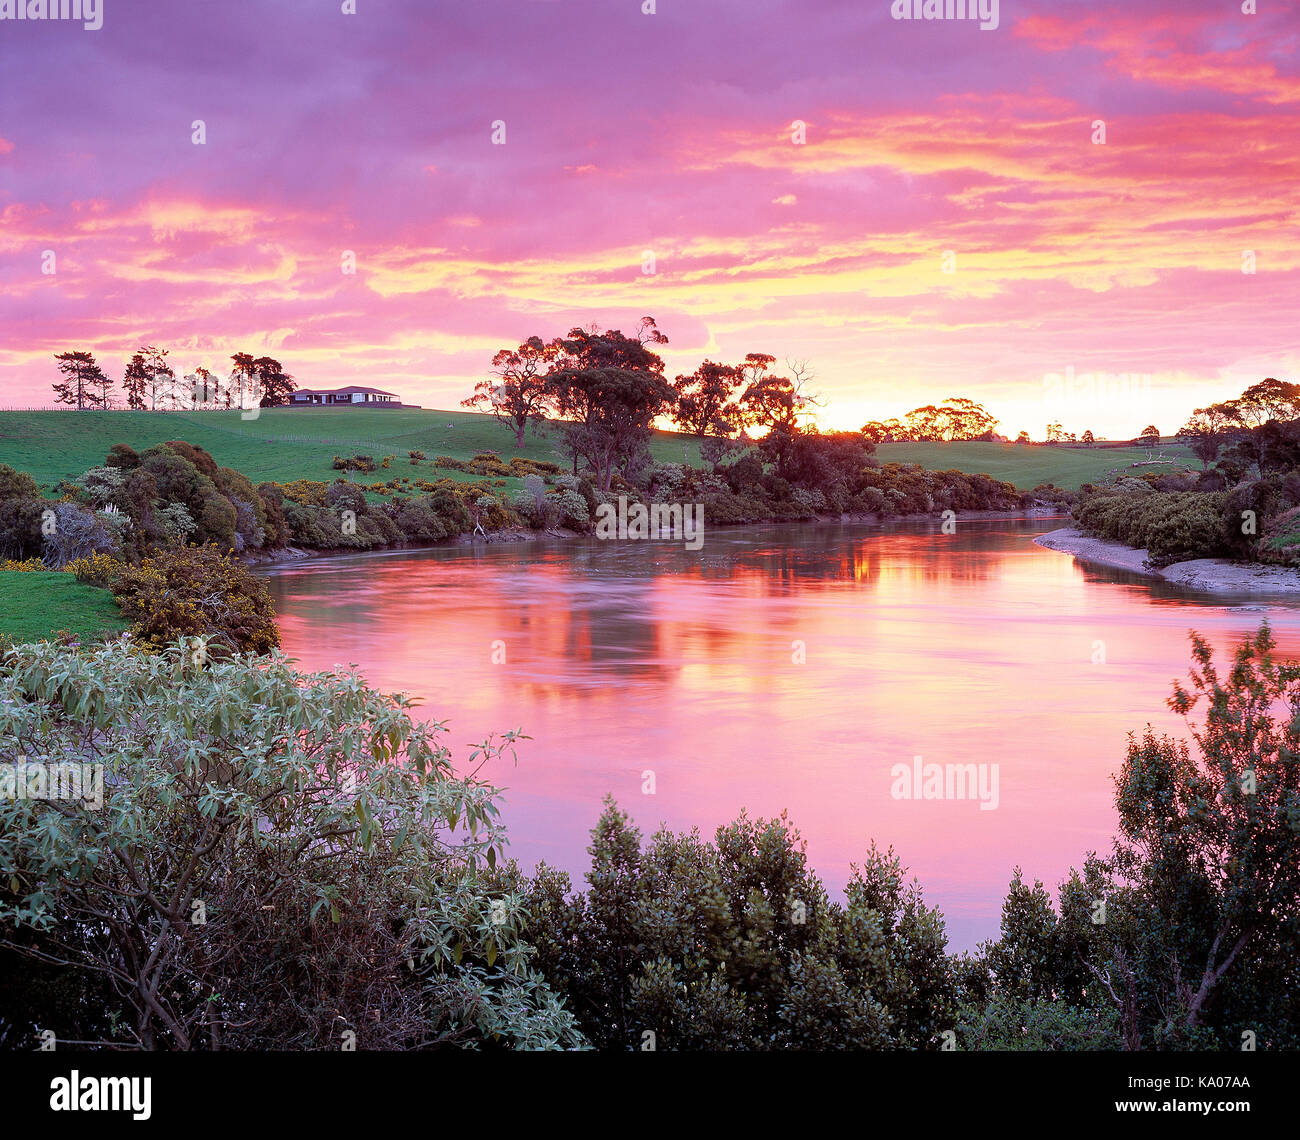 New Zealand. Auckland Region, Rural property with water at sunrise. - Stock Image